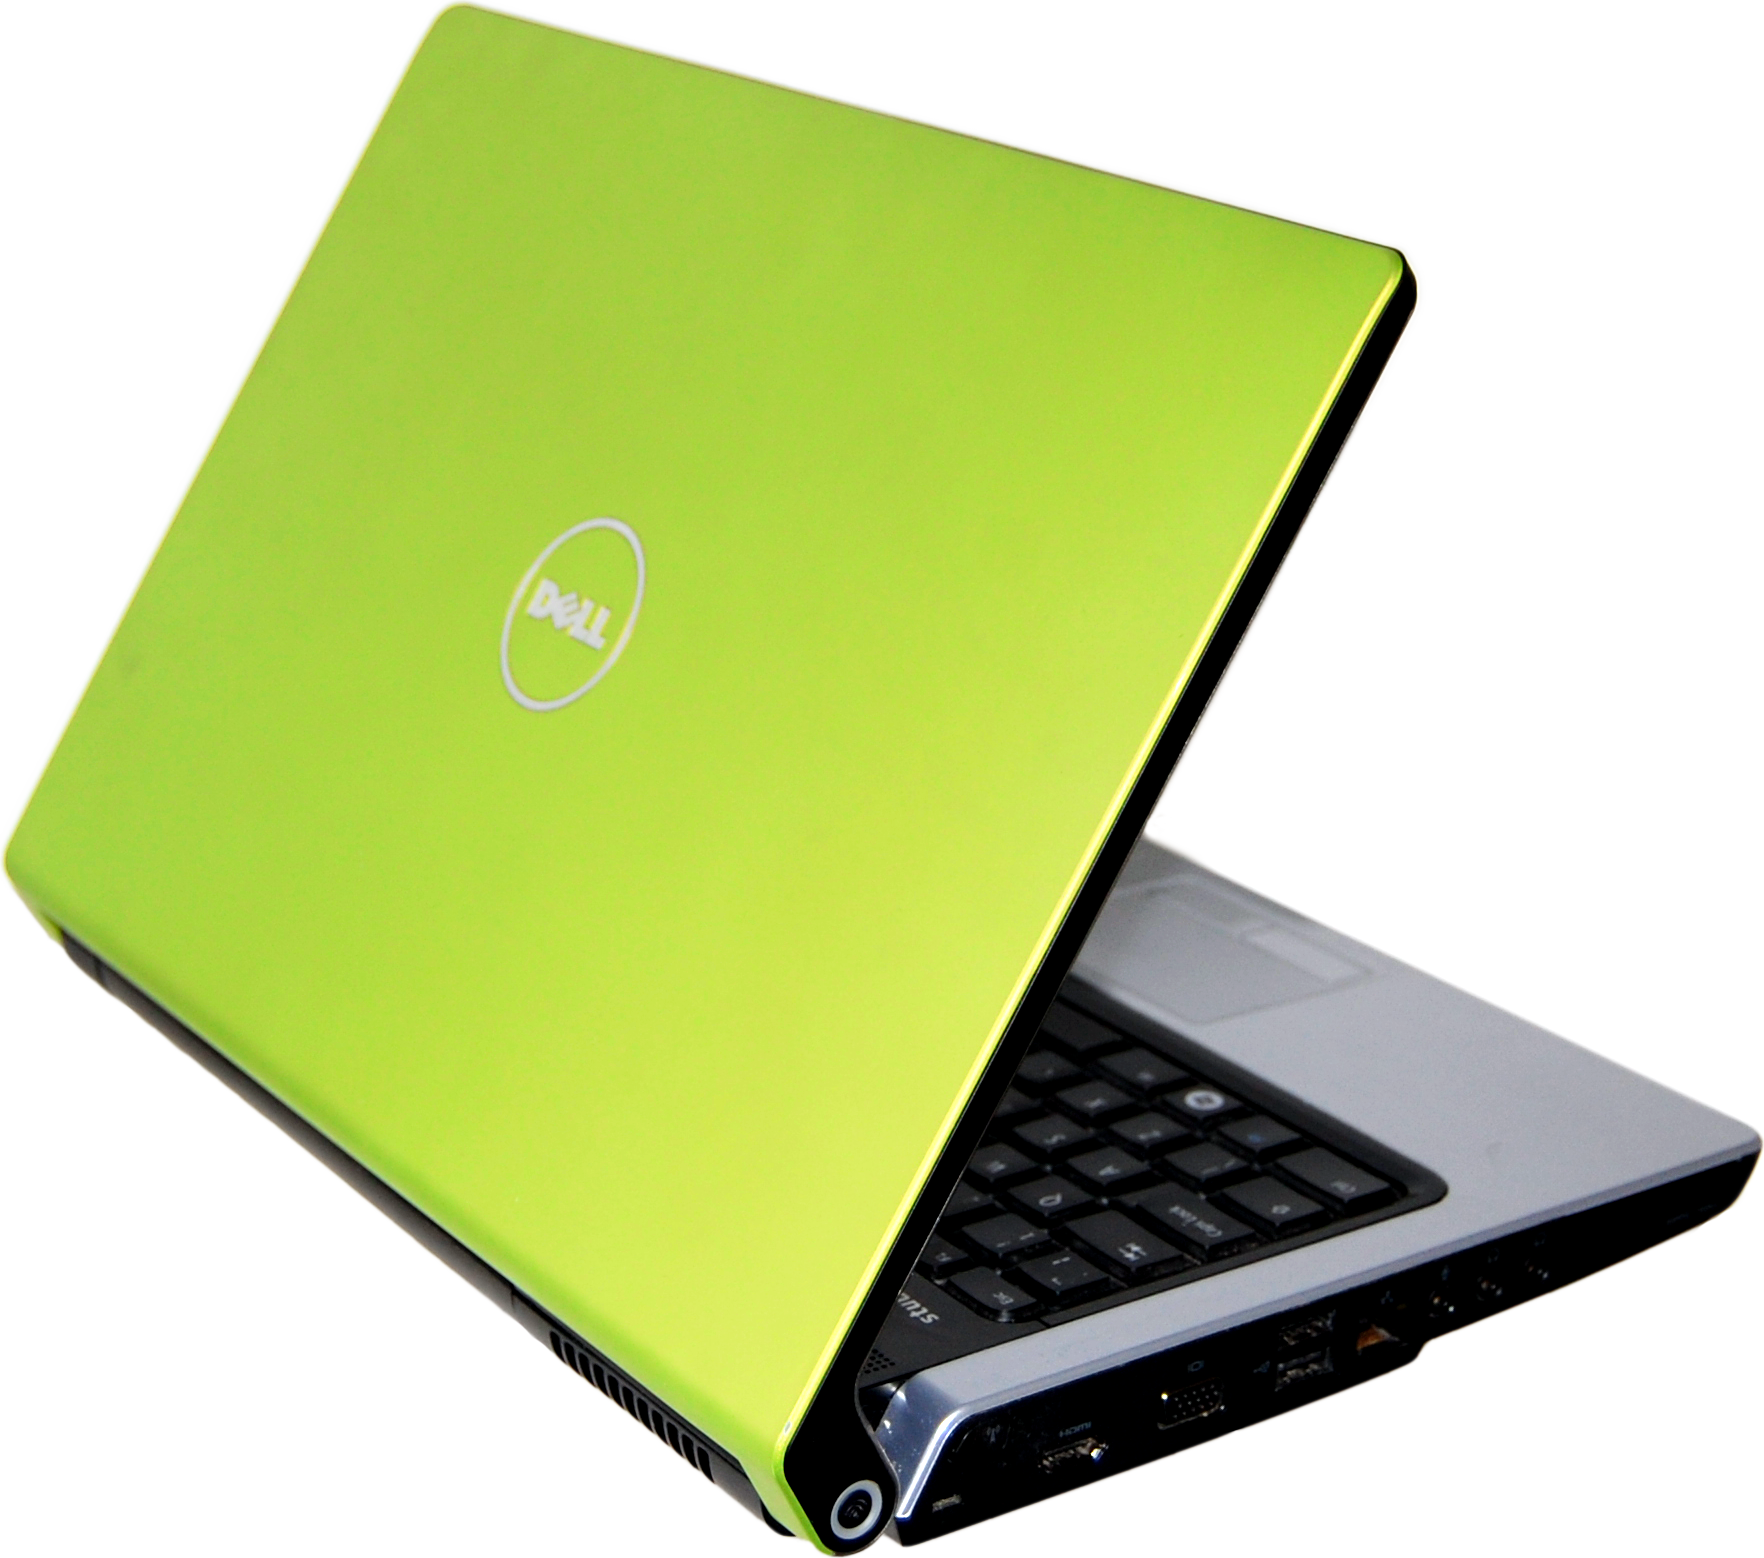 Replacement For Dell Studio 16 Laptop By Technical Precision